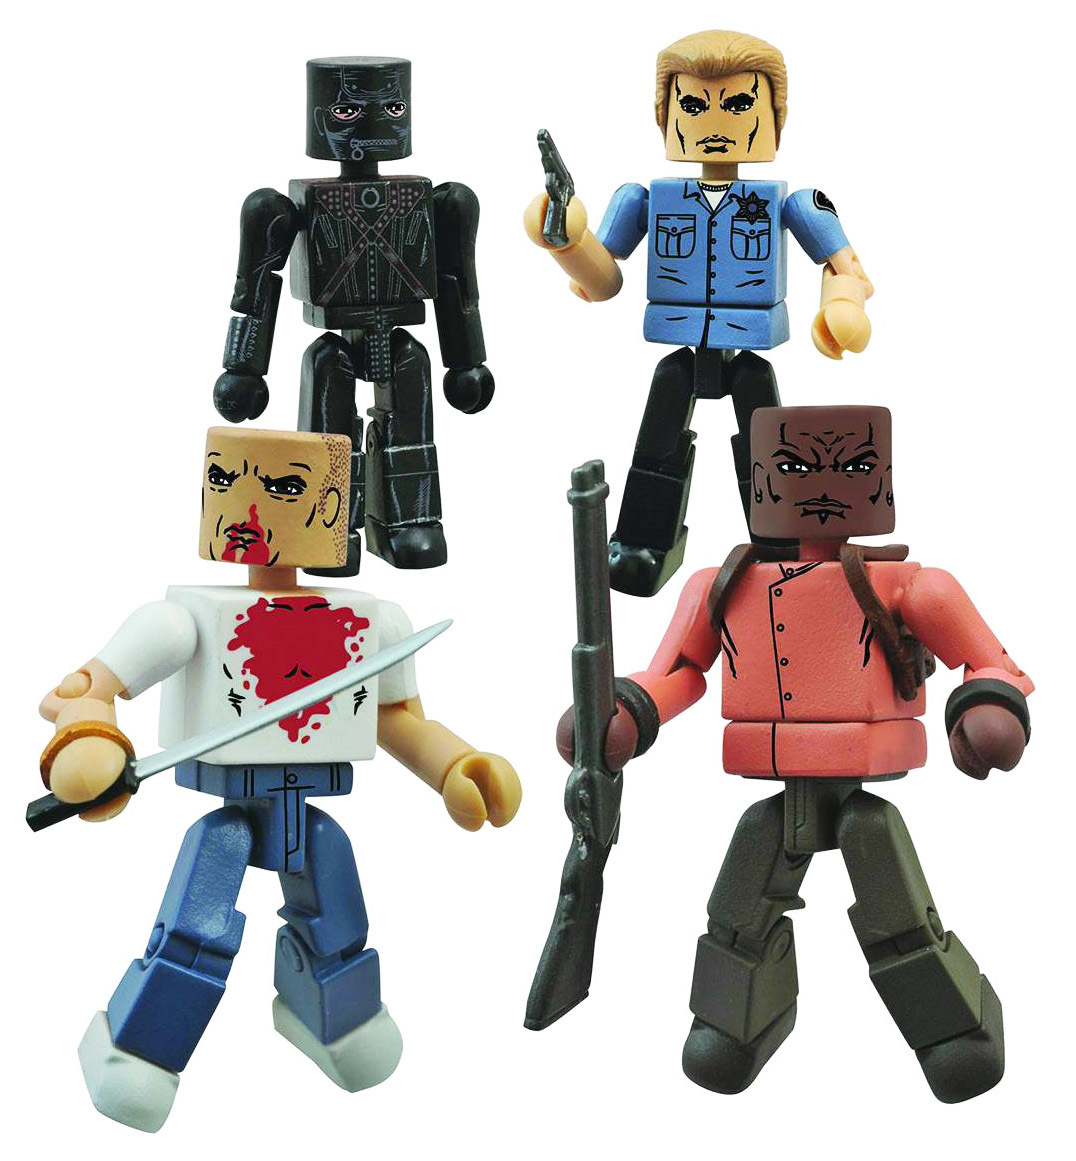 Pulp Fiction Minimates The Gimp Box Set